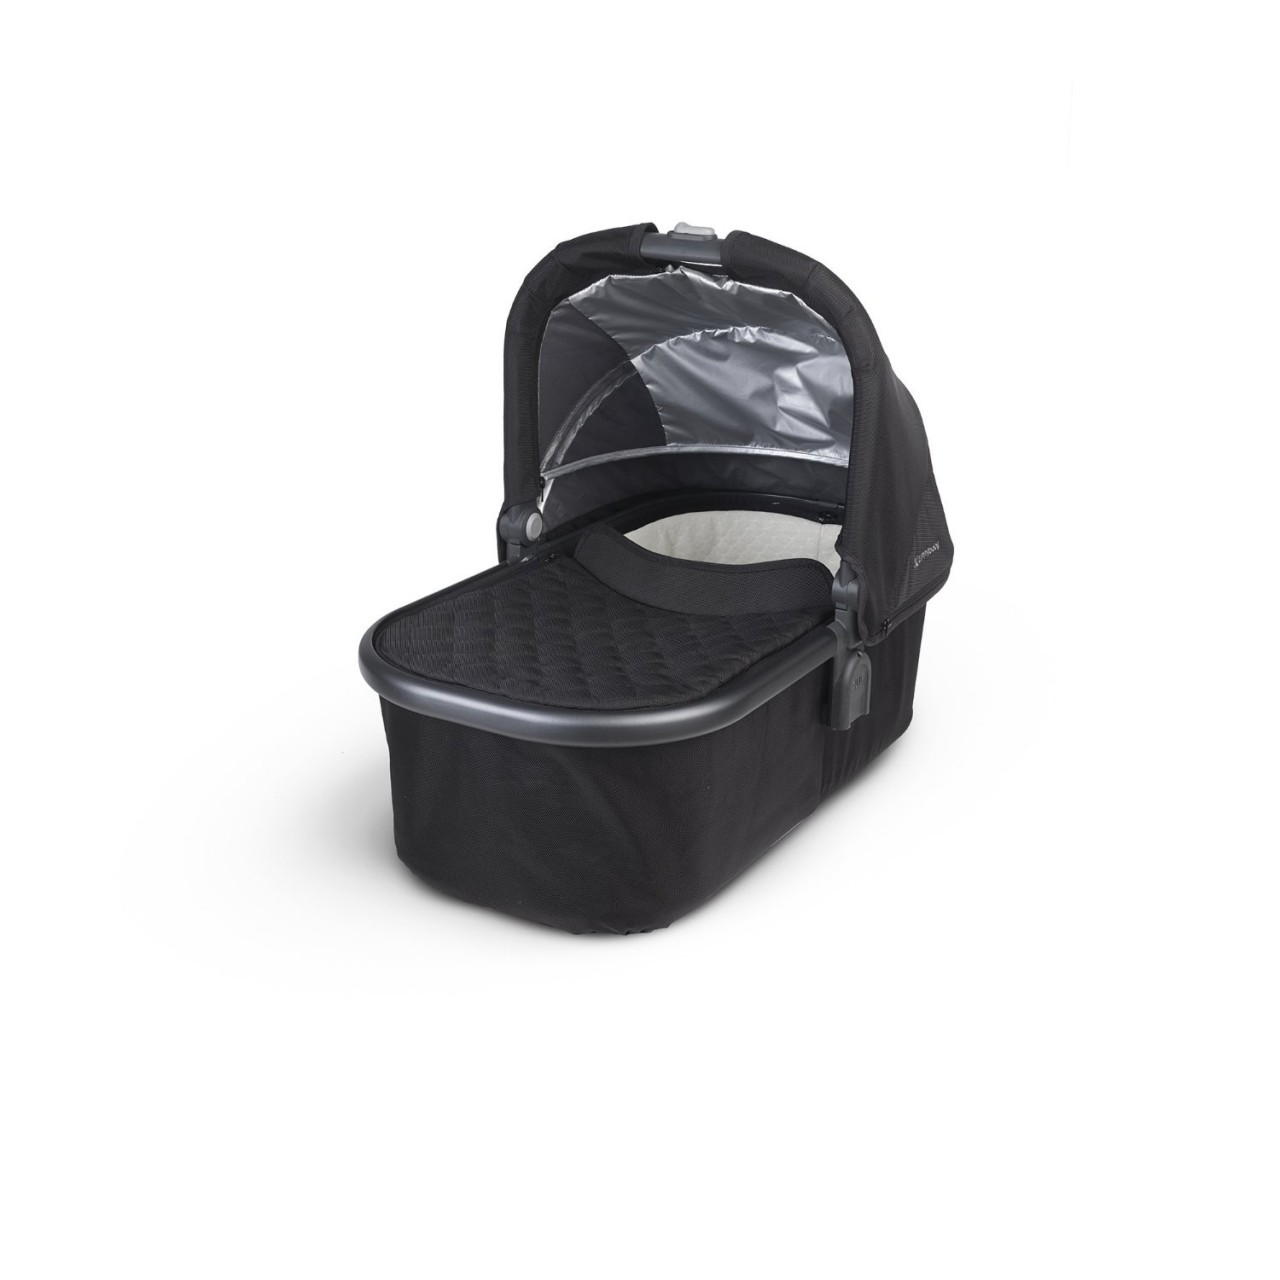 UPPABABY UNIVERSAL BASSINET - MOIS?S